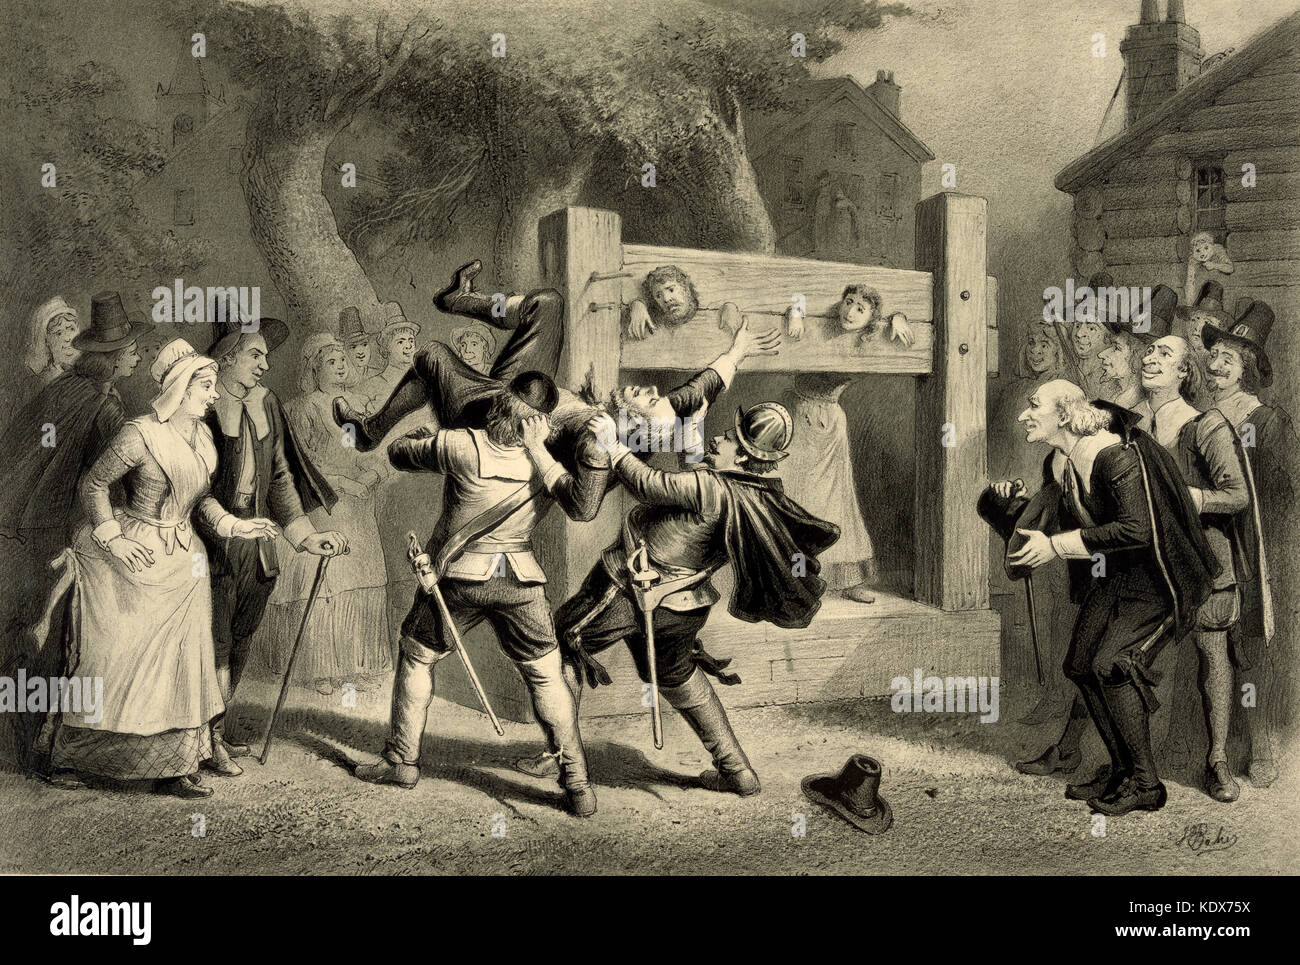 Salem Witch Trials, 1692 - 1693 - Stock Image